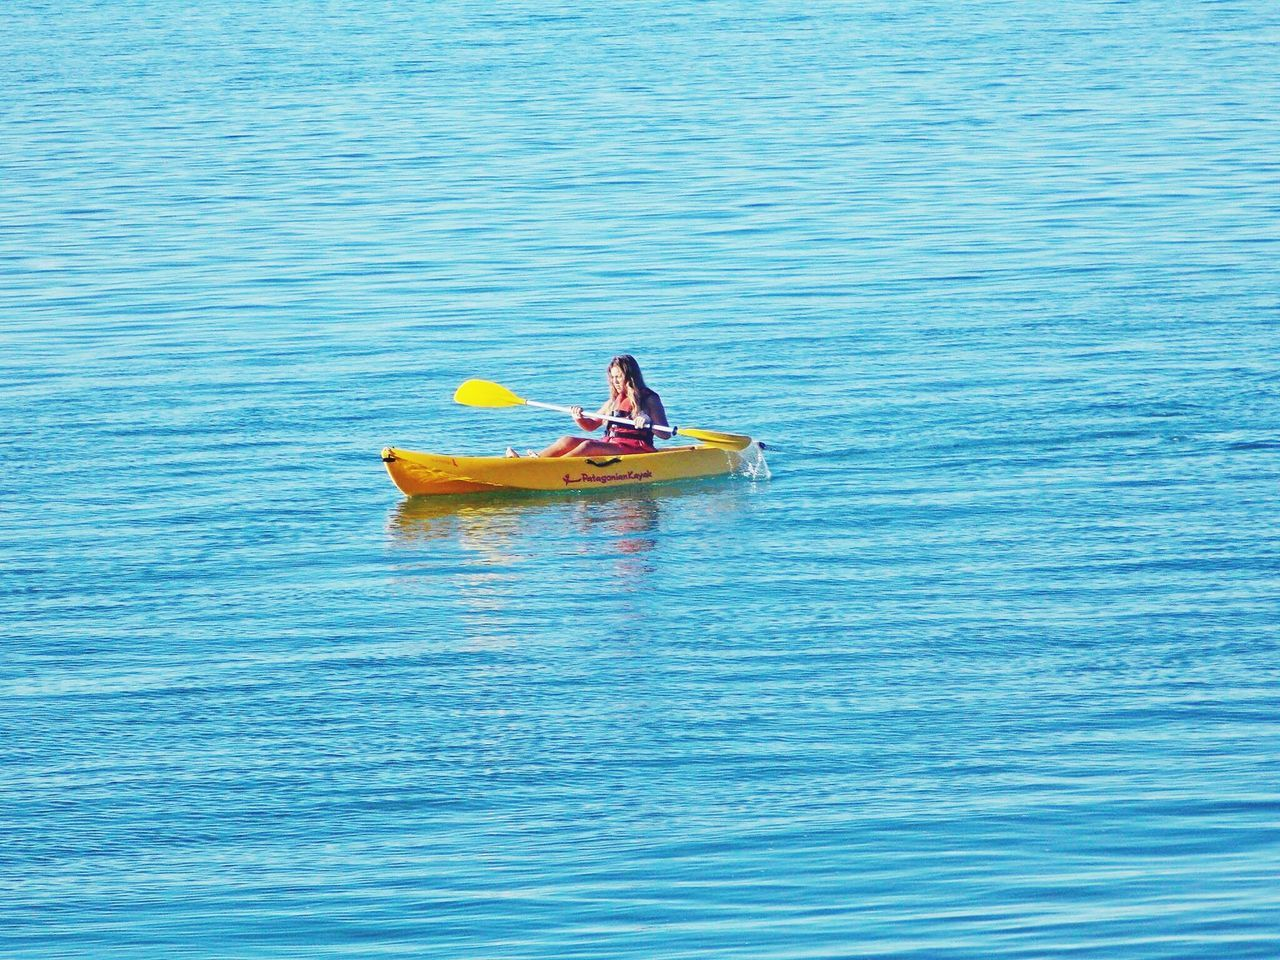 Şūr Kayaking Nautical Vessel Water Day Blue Nature Kayak High Angle View Transportation Argentina Photography Patagonia Argentina Two People Oar Togetherness Men Outdoors Adult People Sitting Sea Rowing Adults Only